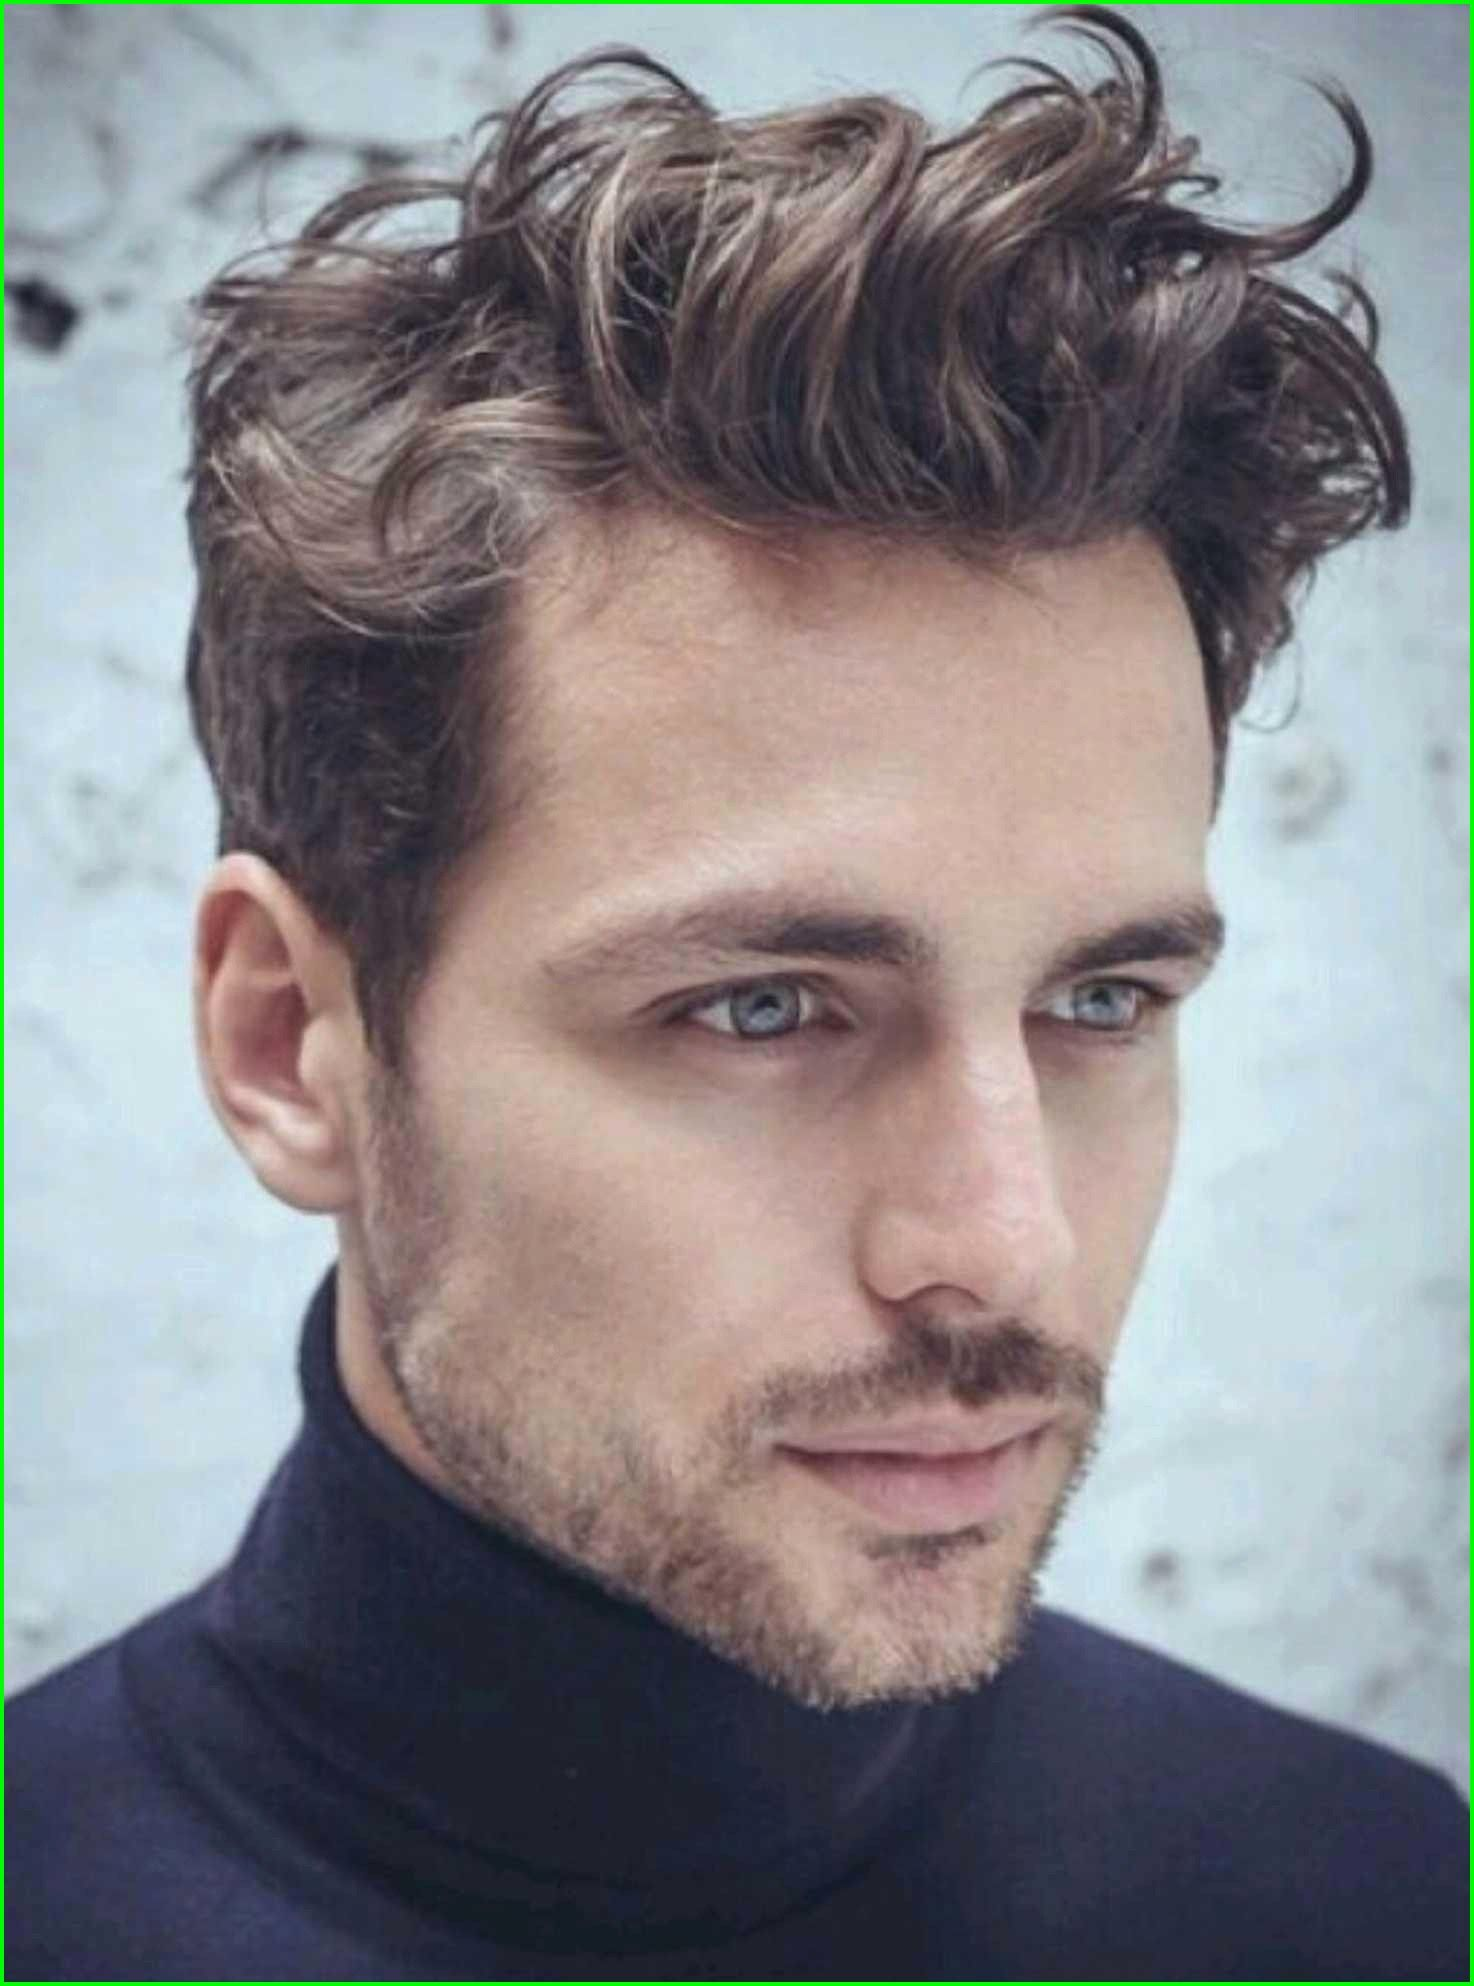 Mens Hairstyles For Oval Faces 8423 Hairstyles Hairstyle For Men Oval Face Shape Good Looking Medium Hair Styles Wavy Hair Men Oval Face Hairstyles